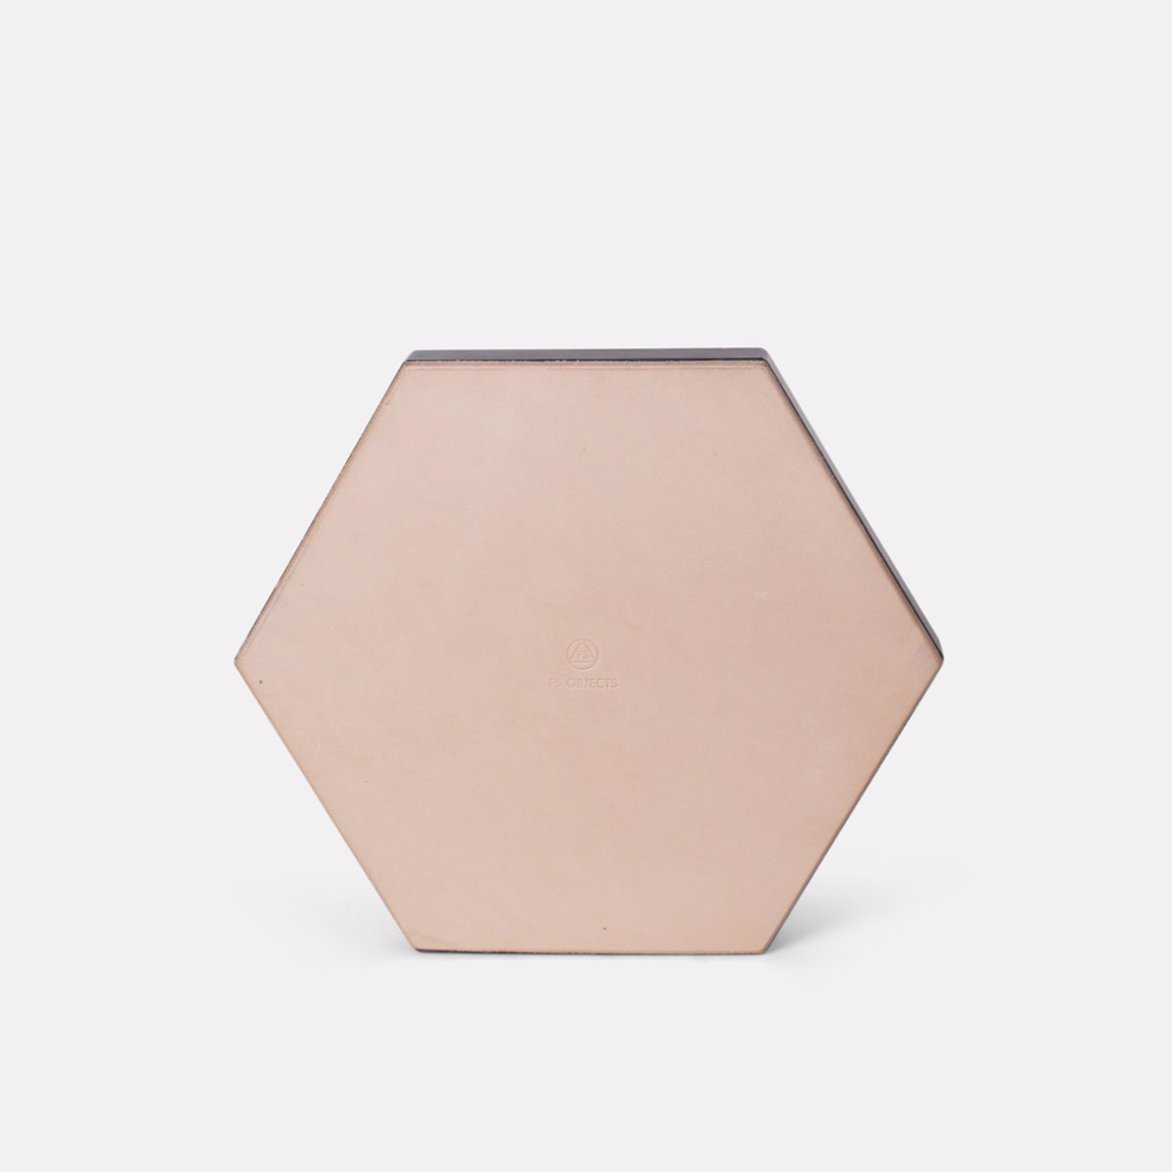 Green Hexagon Trivet